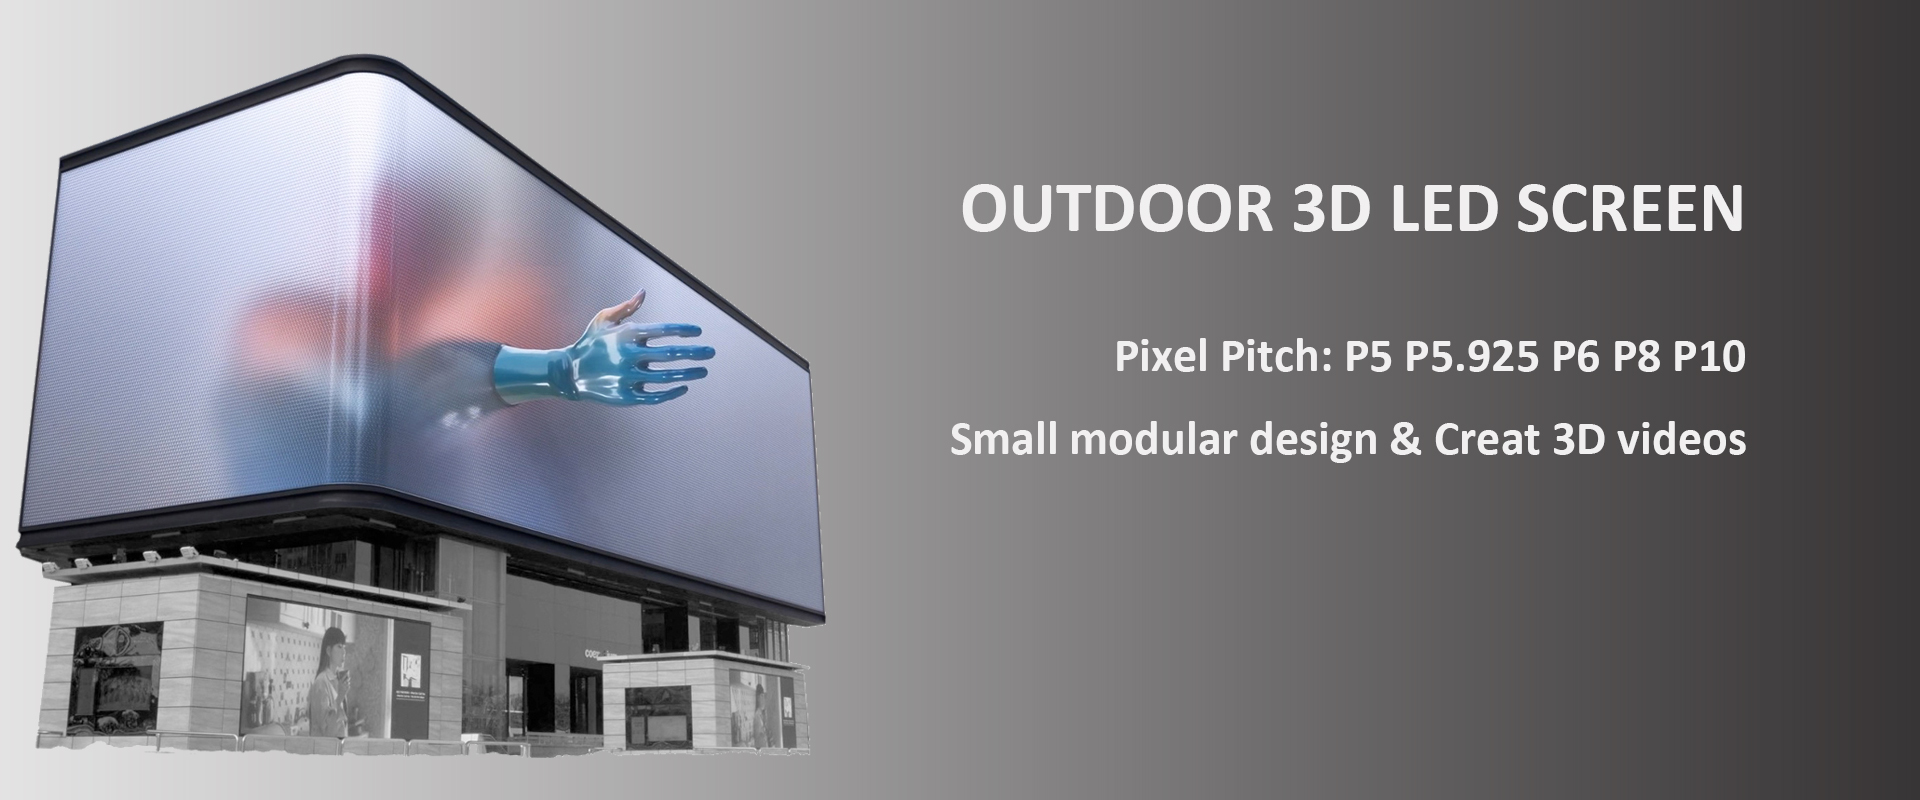 outdoor 3d led screen